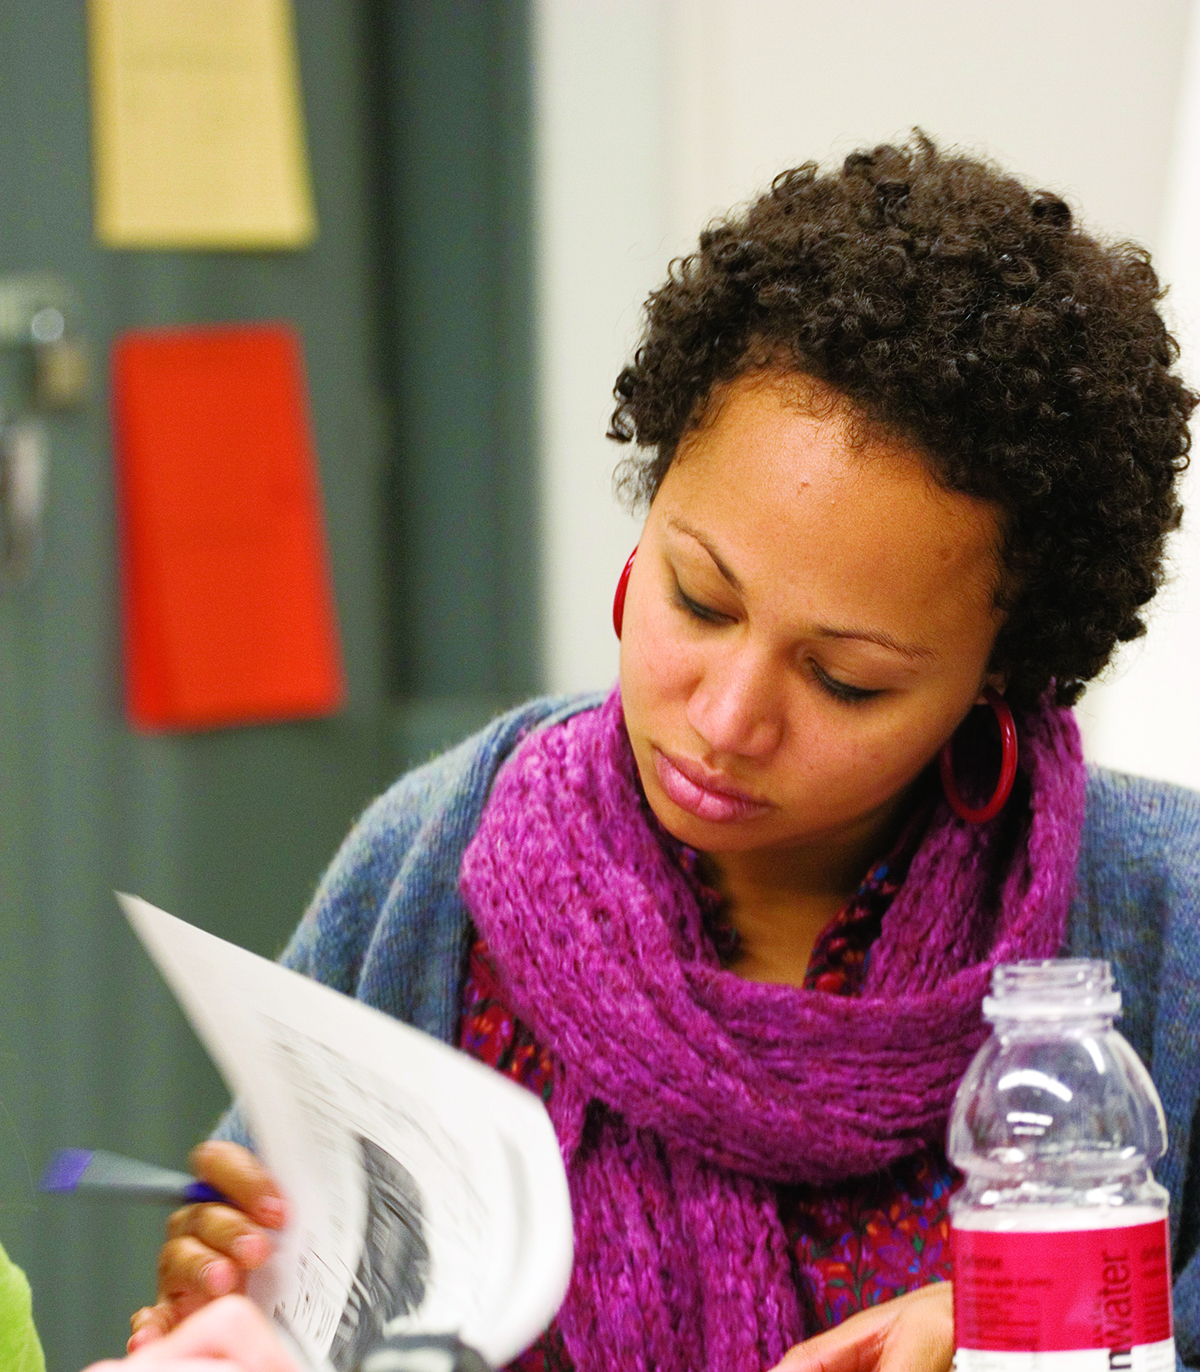 student wearing scarf reading a paper